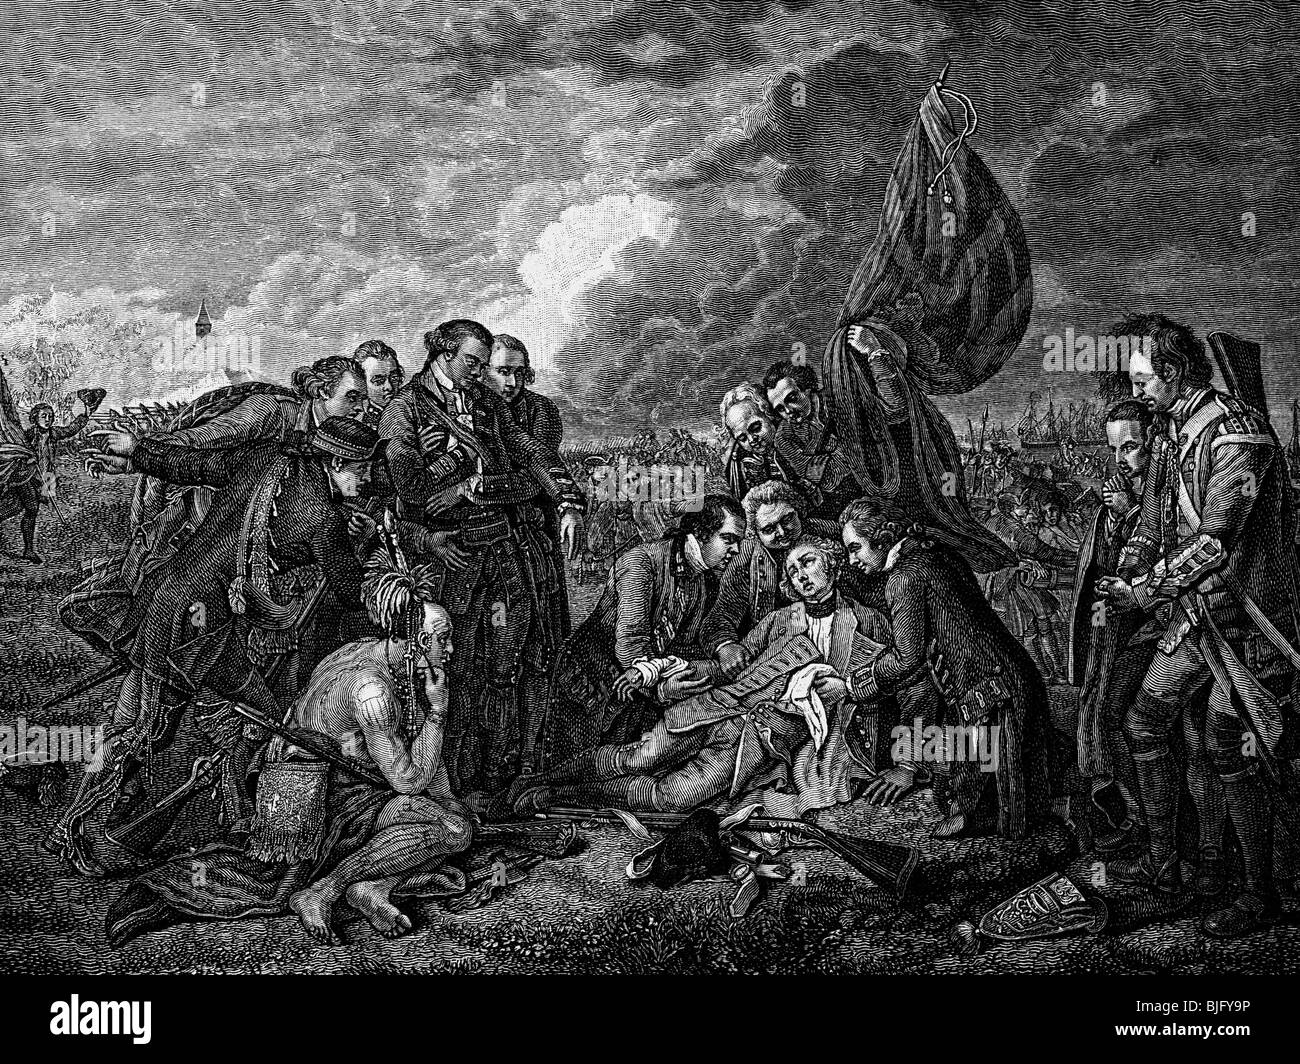 Wolfe, James, 2.1.1726 - 13.9.1759, British general, death in the Battle of the Plains of Saint Abraham, wood engraving, - Stock Image